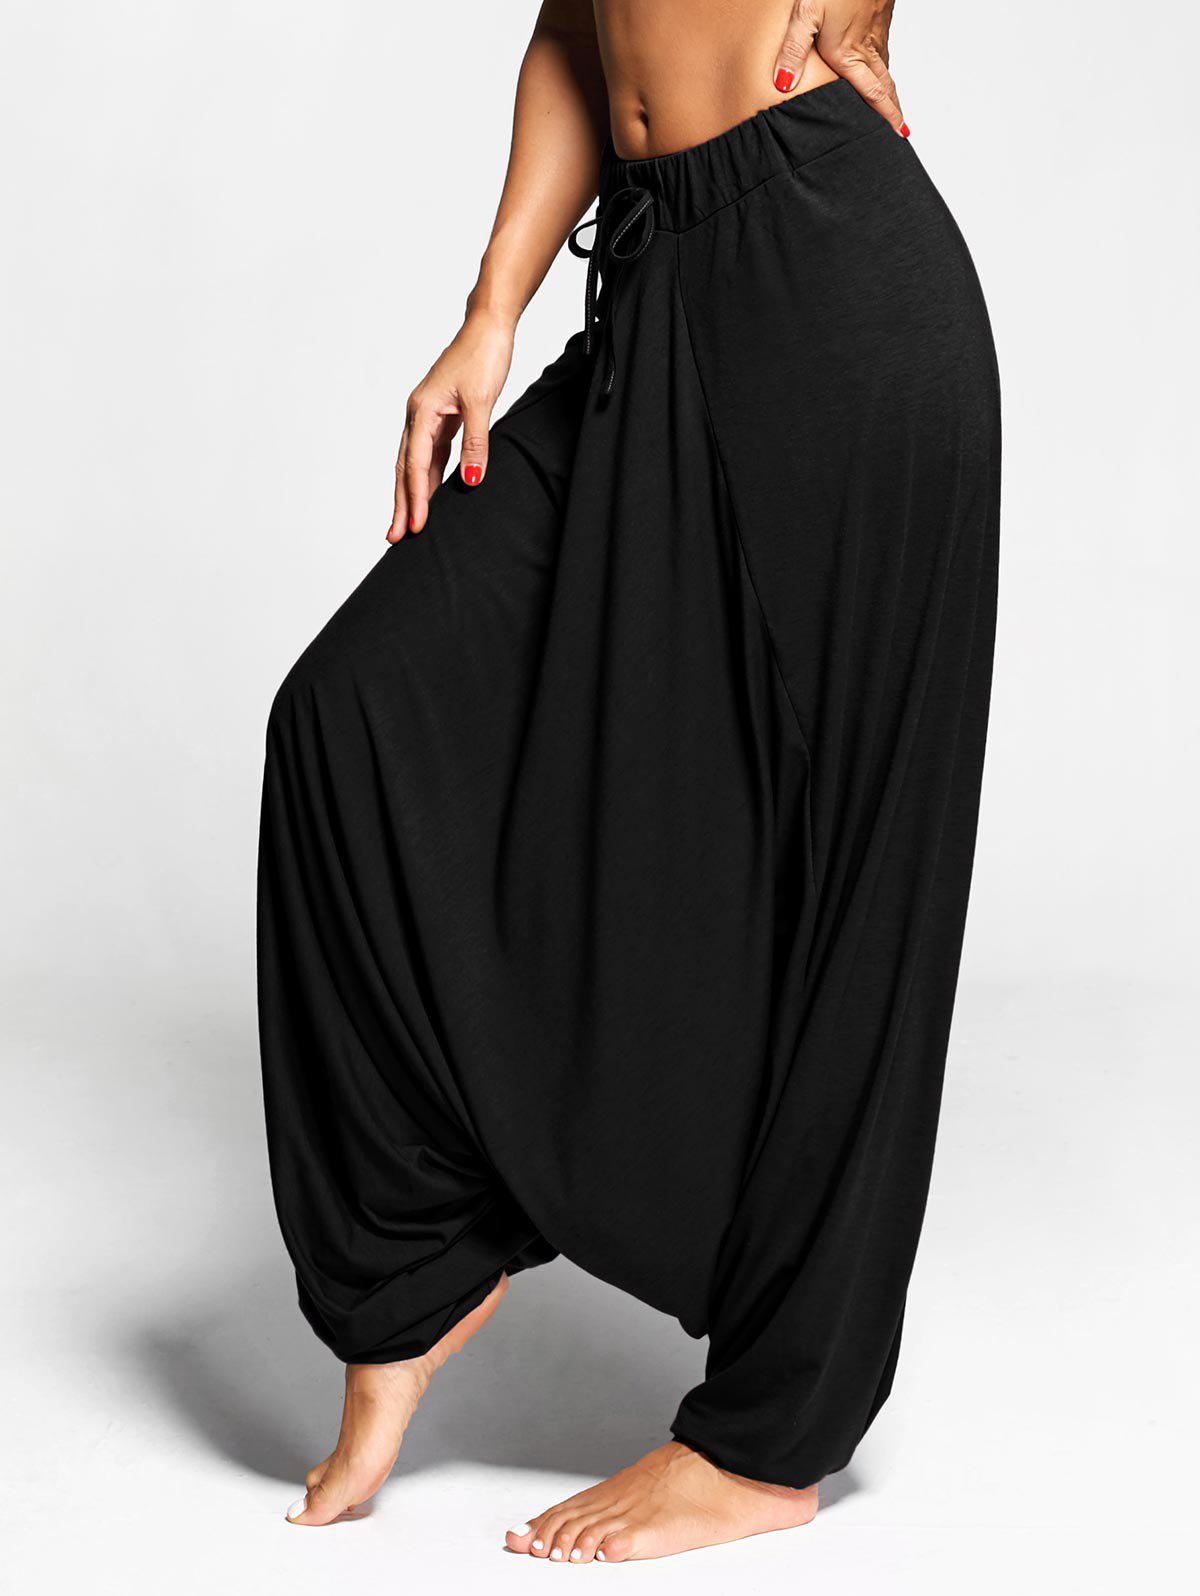 Drop Bottom Harem Pants with Drawstring - BLACK 2XL